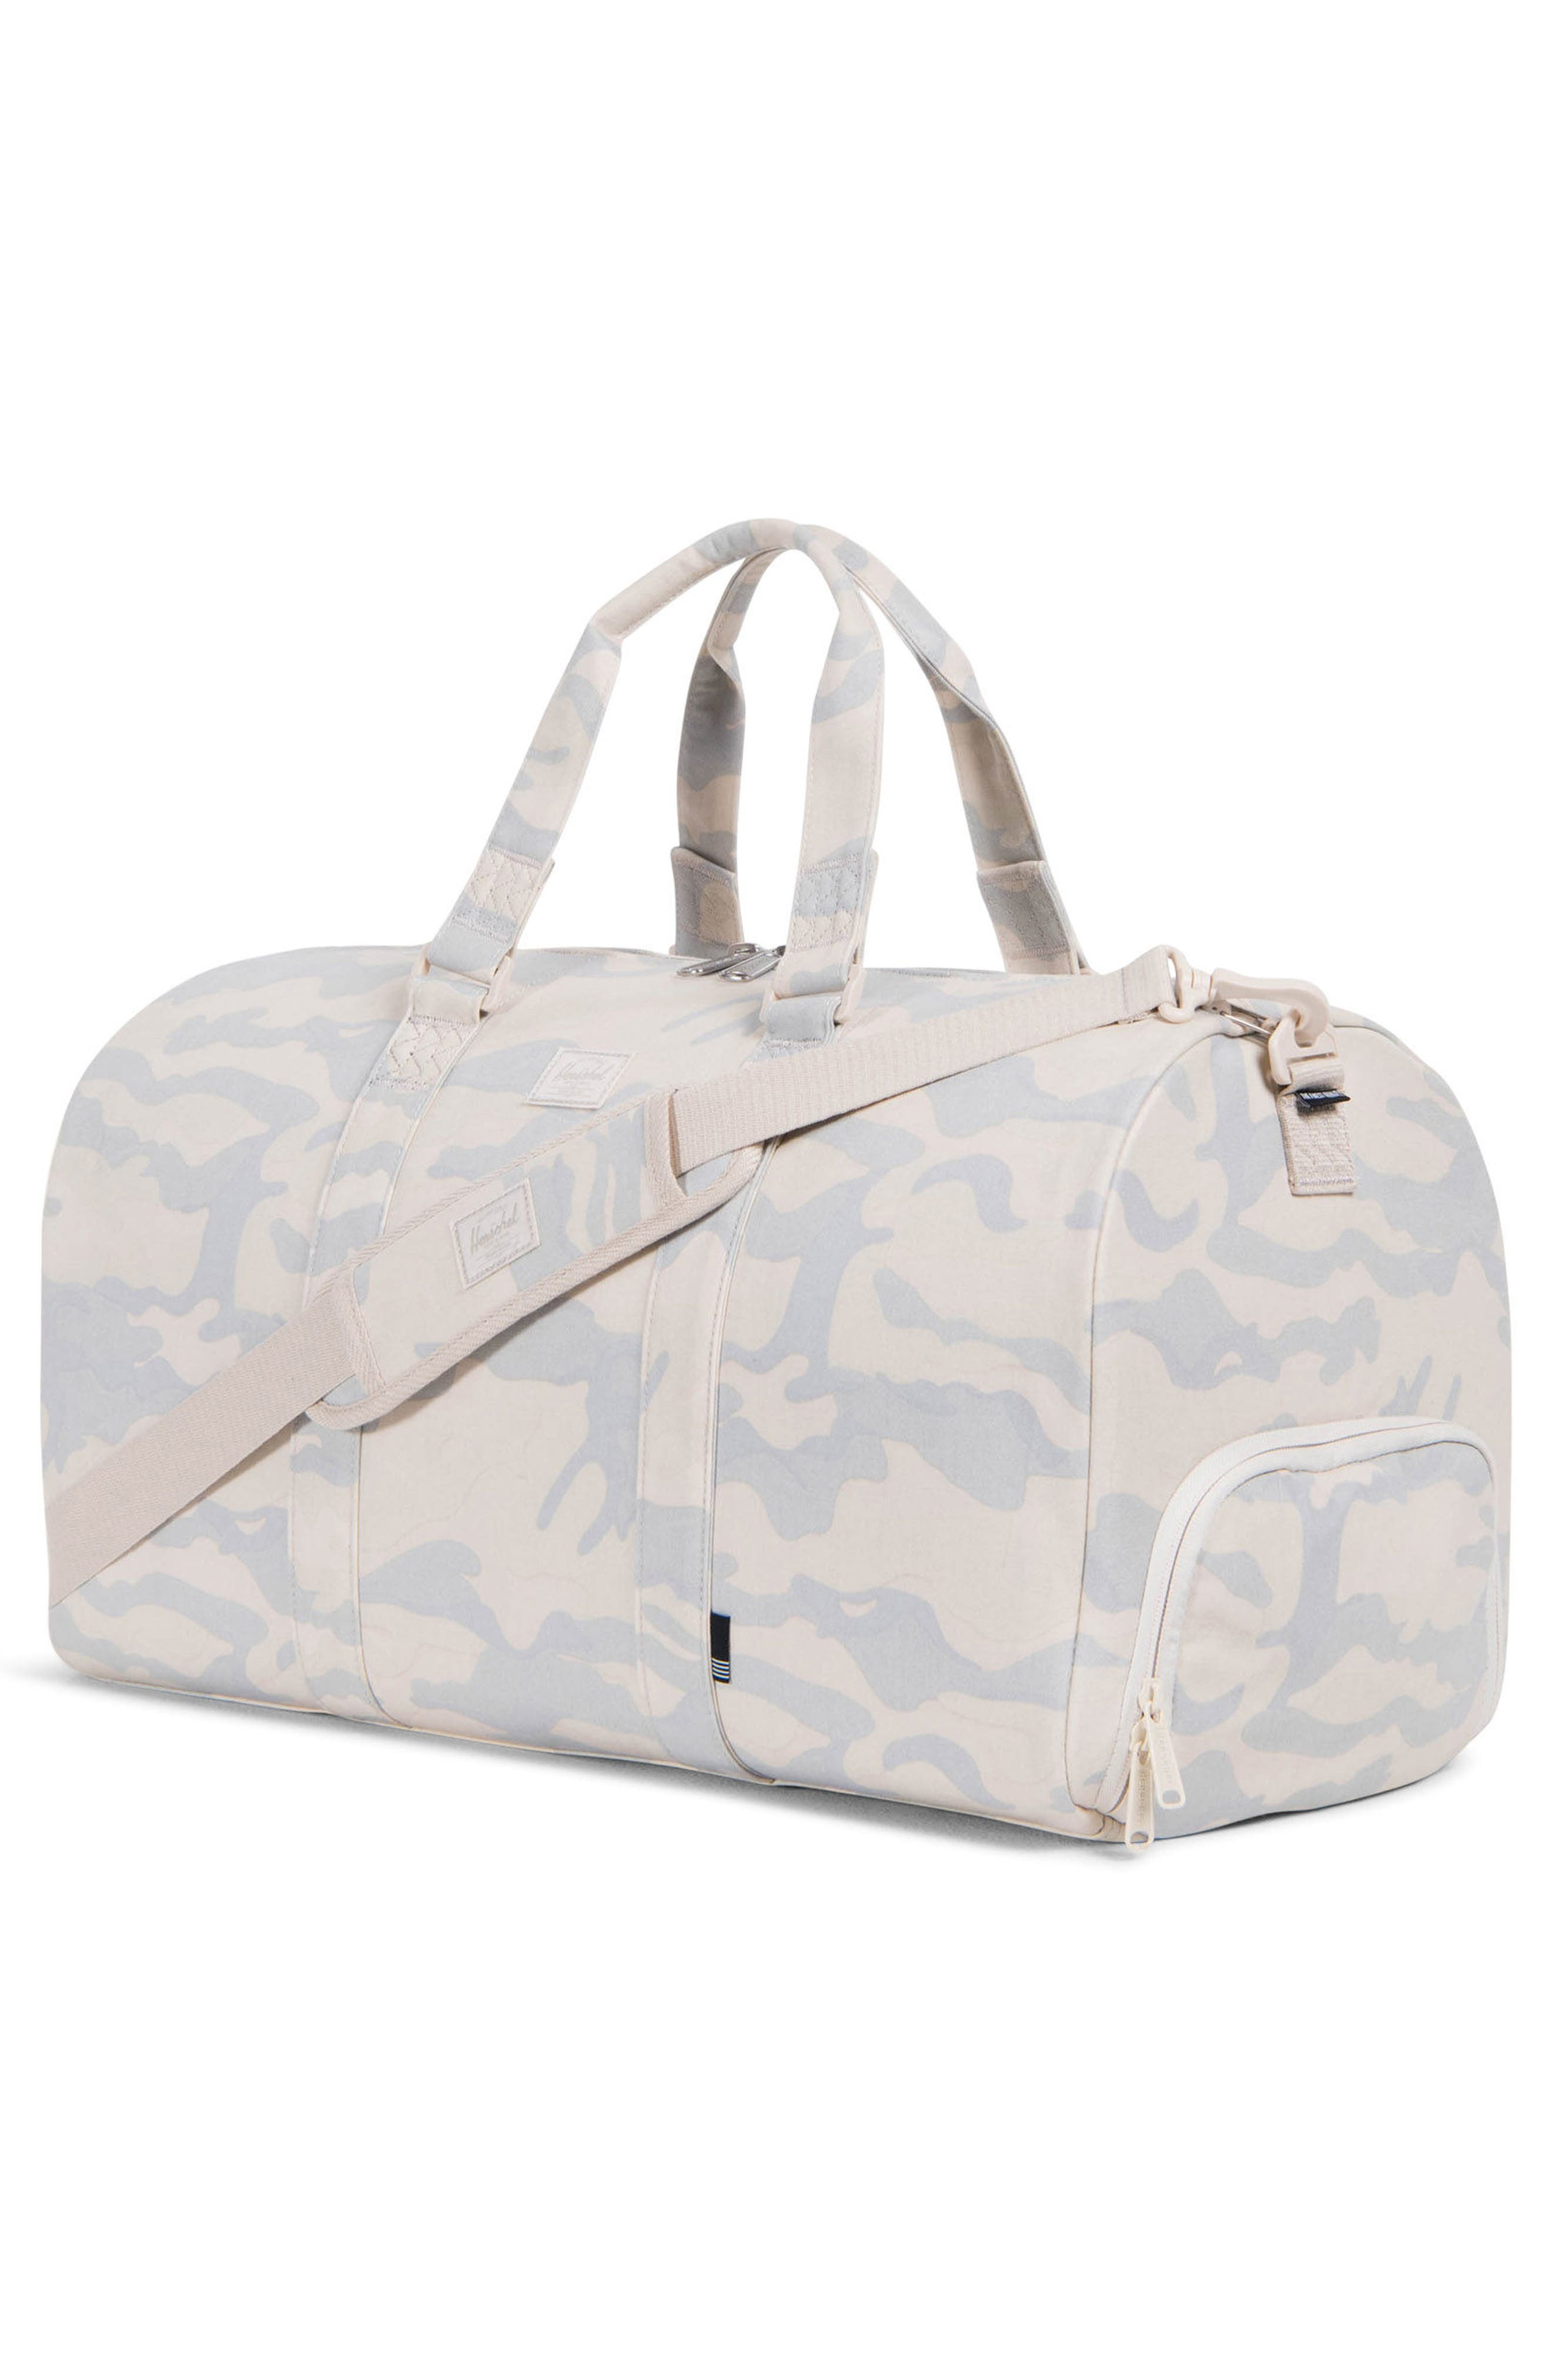 Novel Cotton Canvas Duffel Bag,                             Alternate thumbnail 3, color,                             250